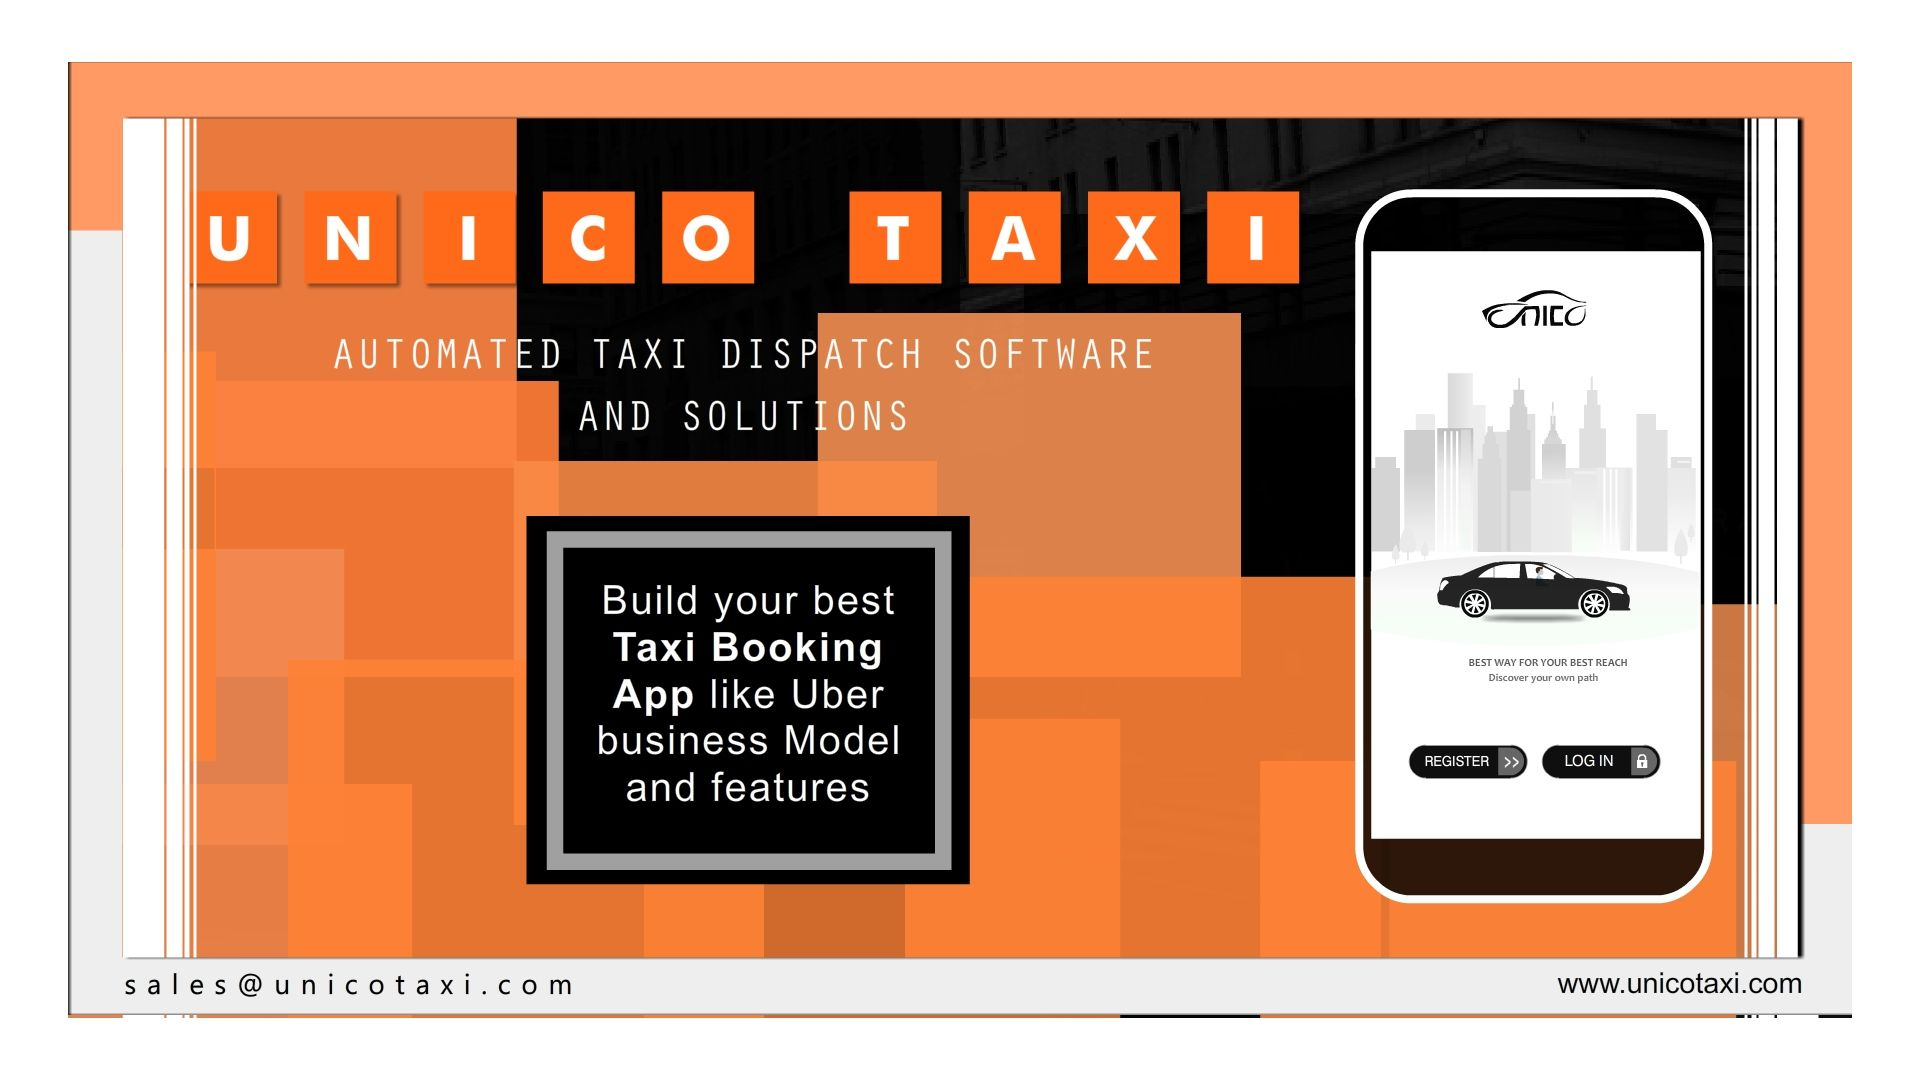 UNICO Taxi - The Best Taxi Solution with Versatile and Cost